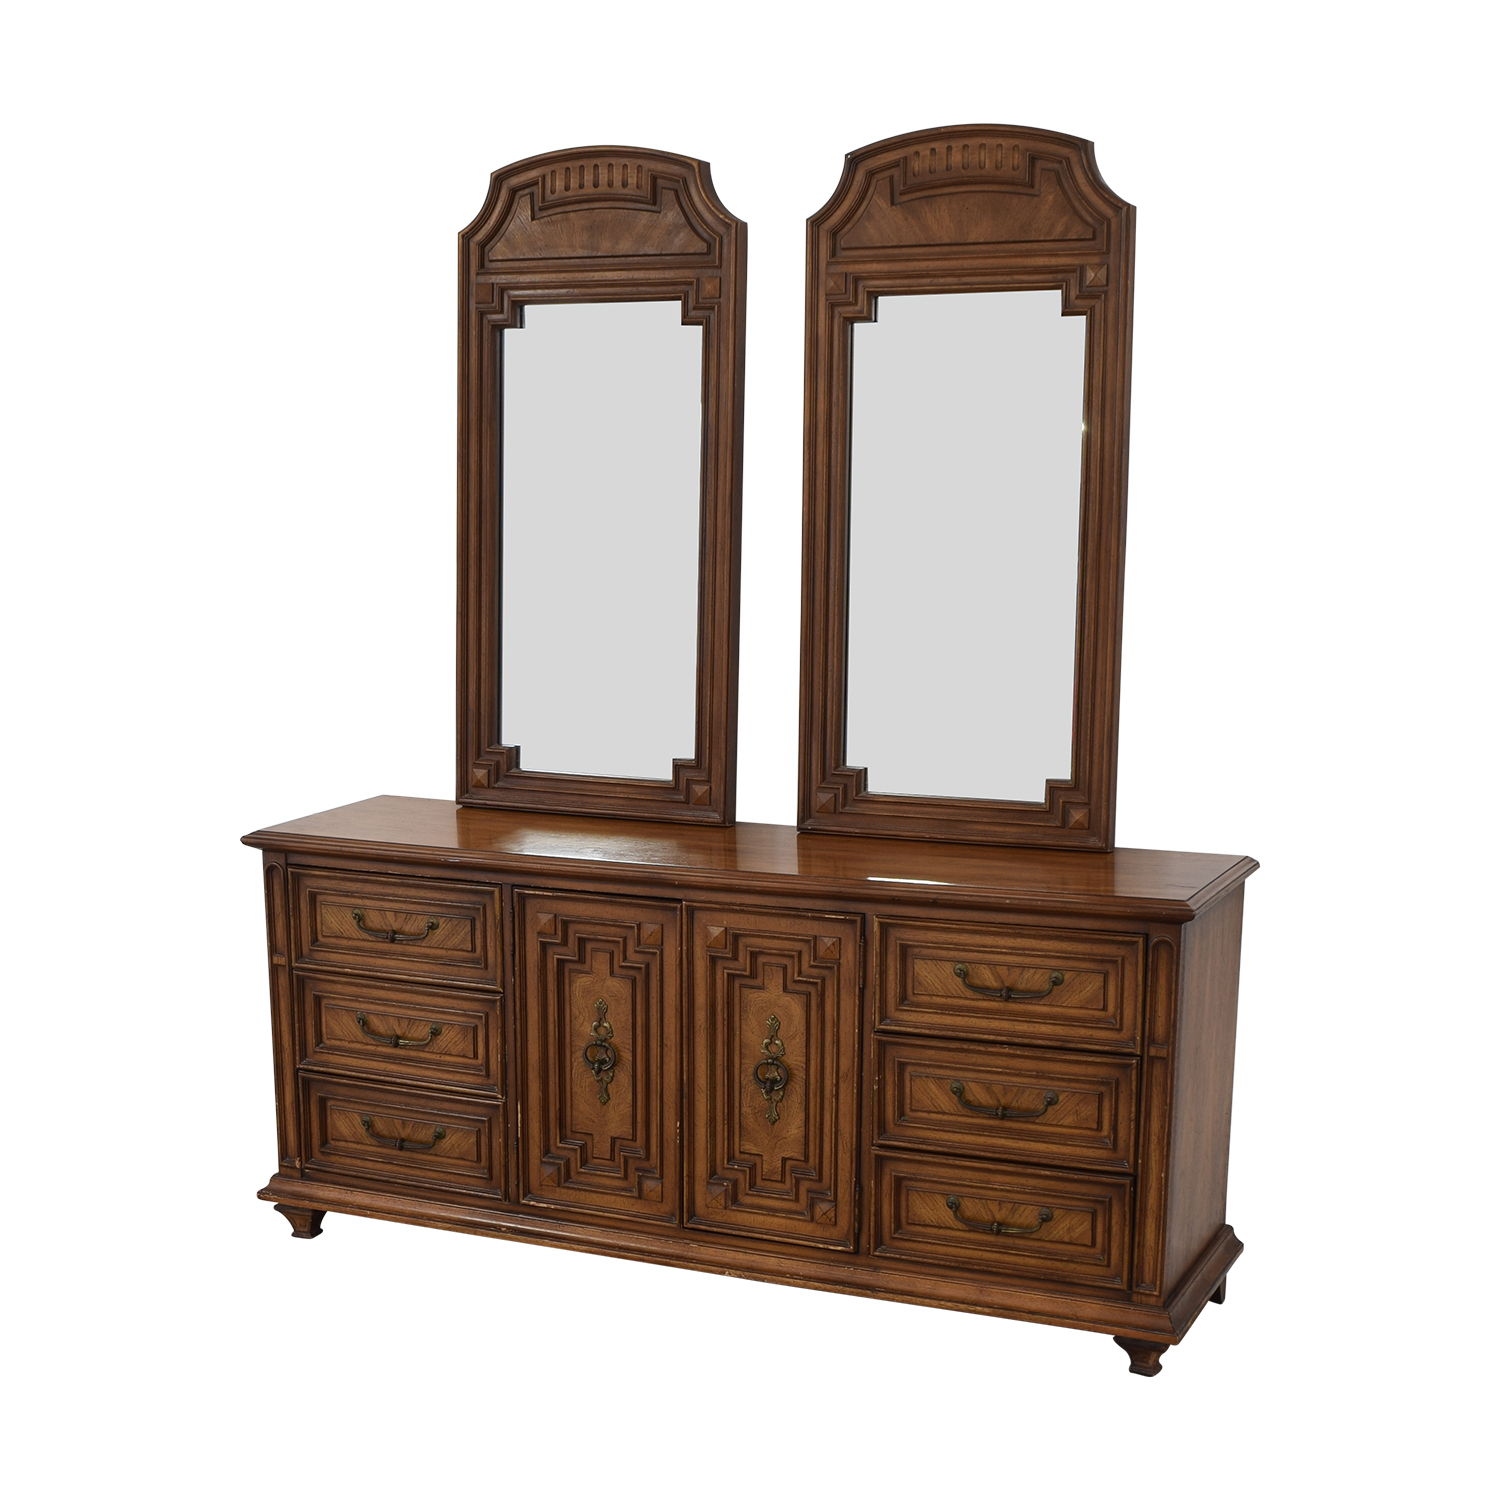 Vintage Dresser with Two Mirrors brown